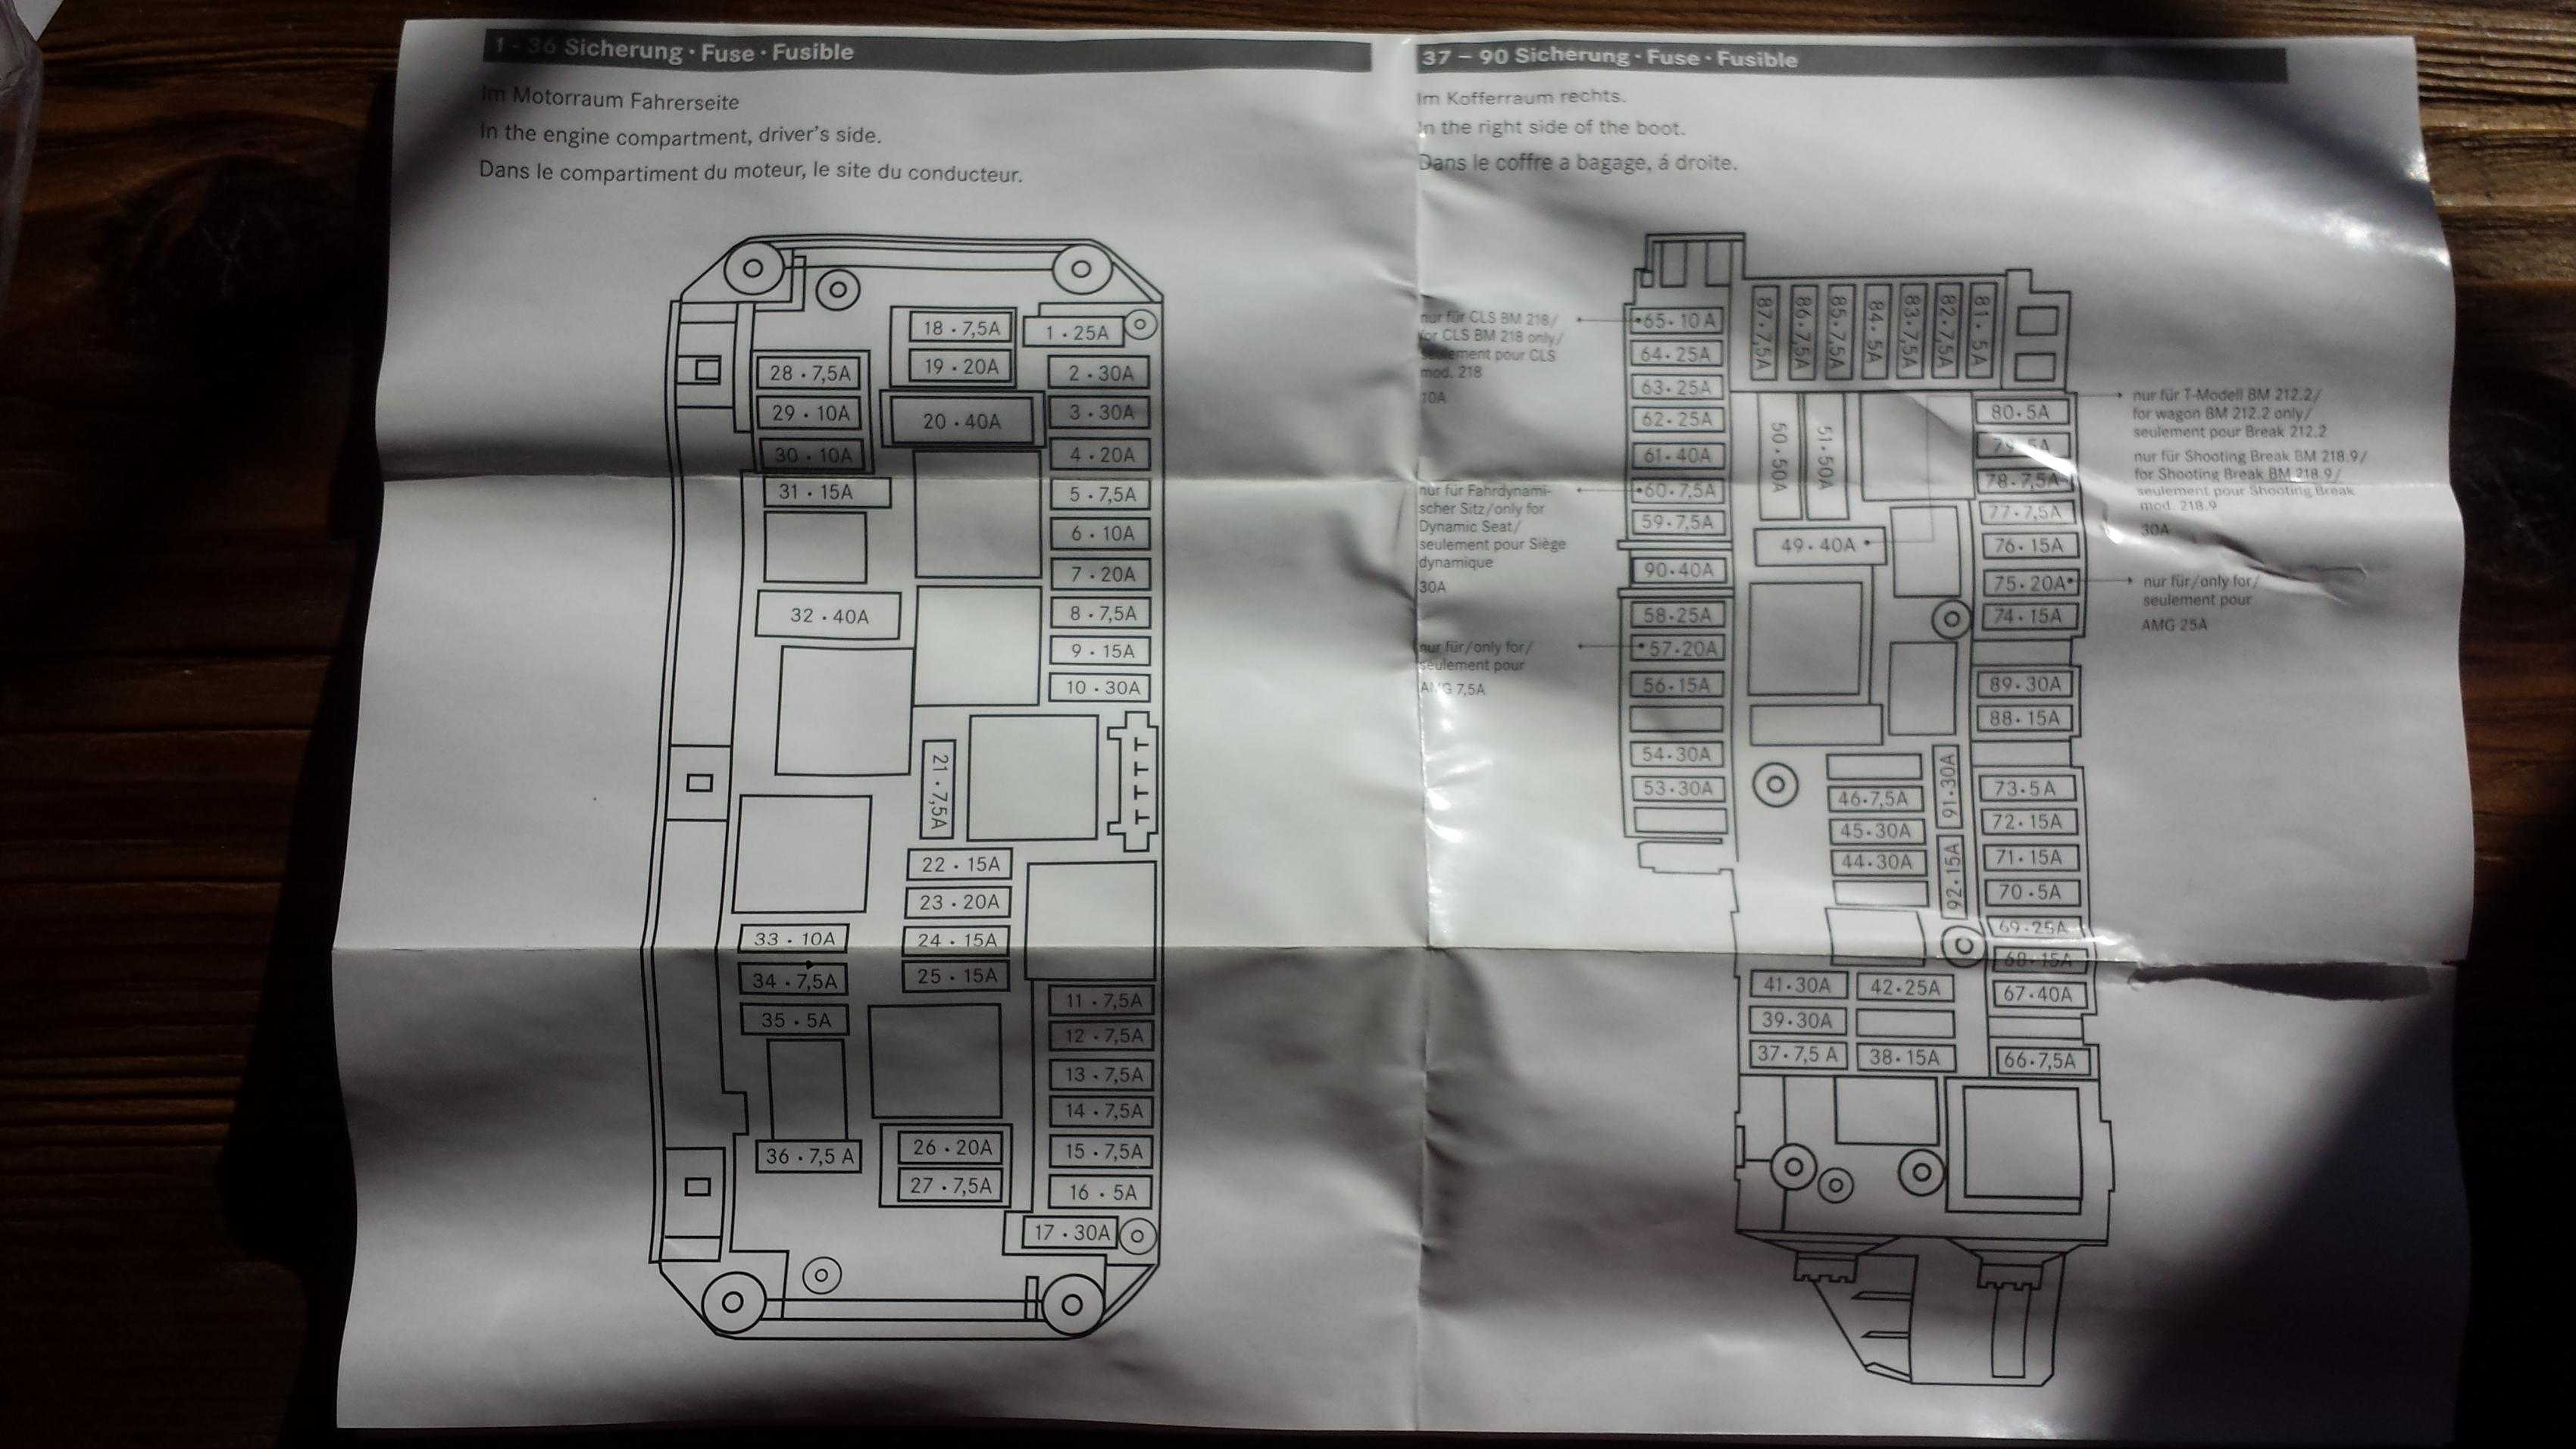 Ford Mustang Fuse Box Diagram 2001 Chevy Suburban Fuse Box Diagram